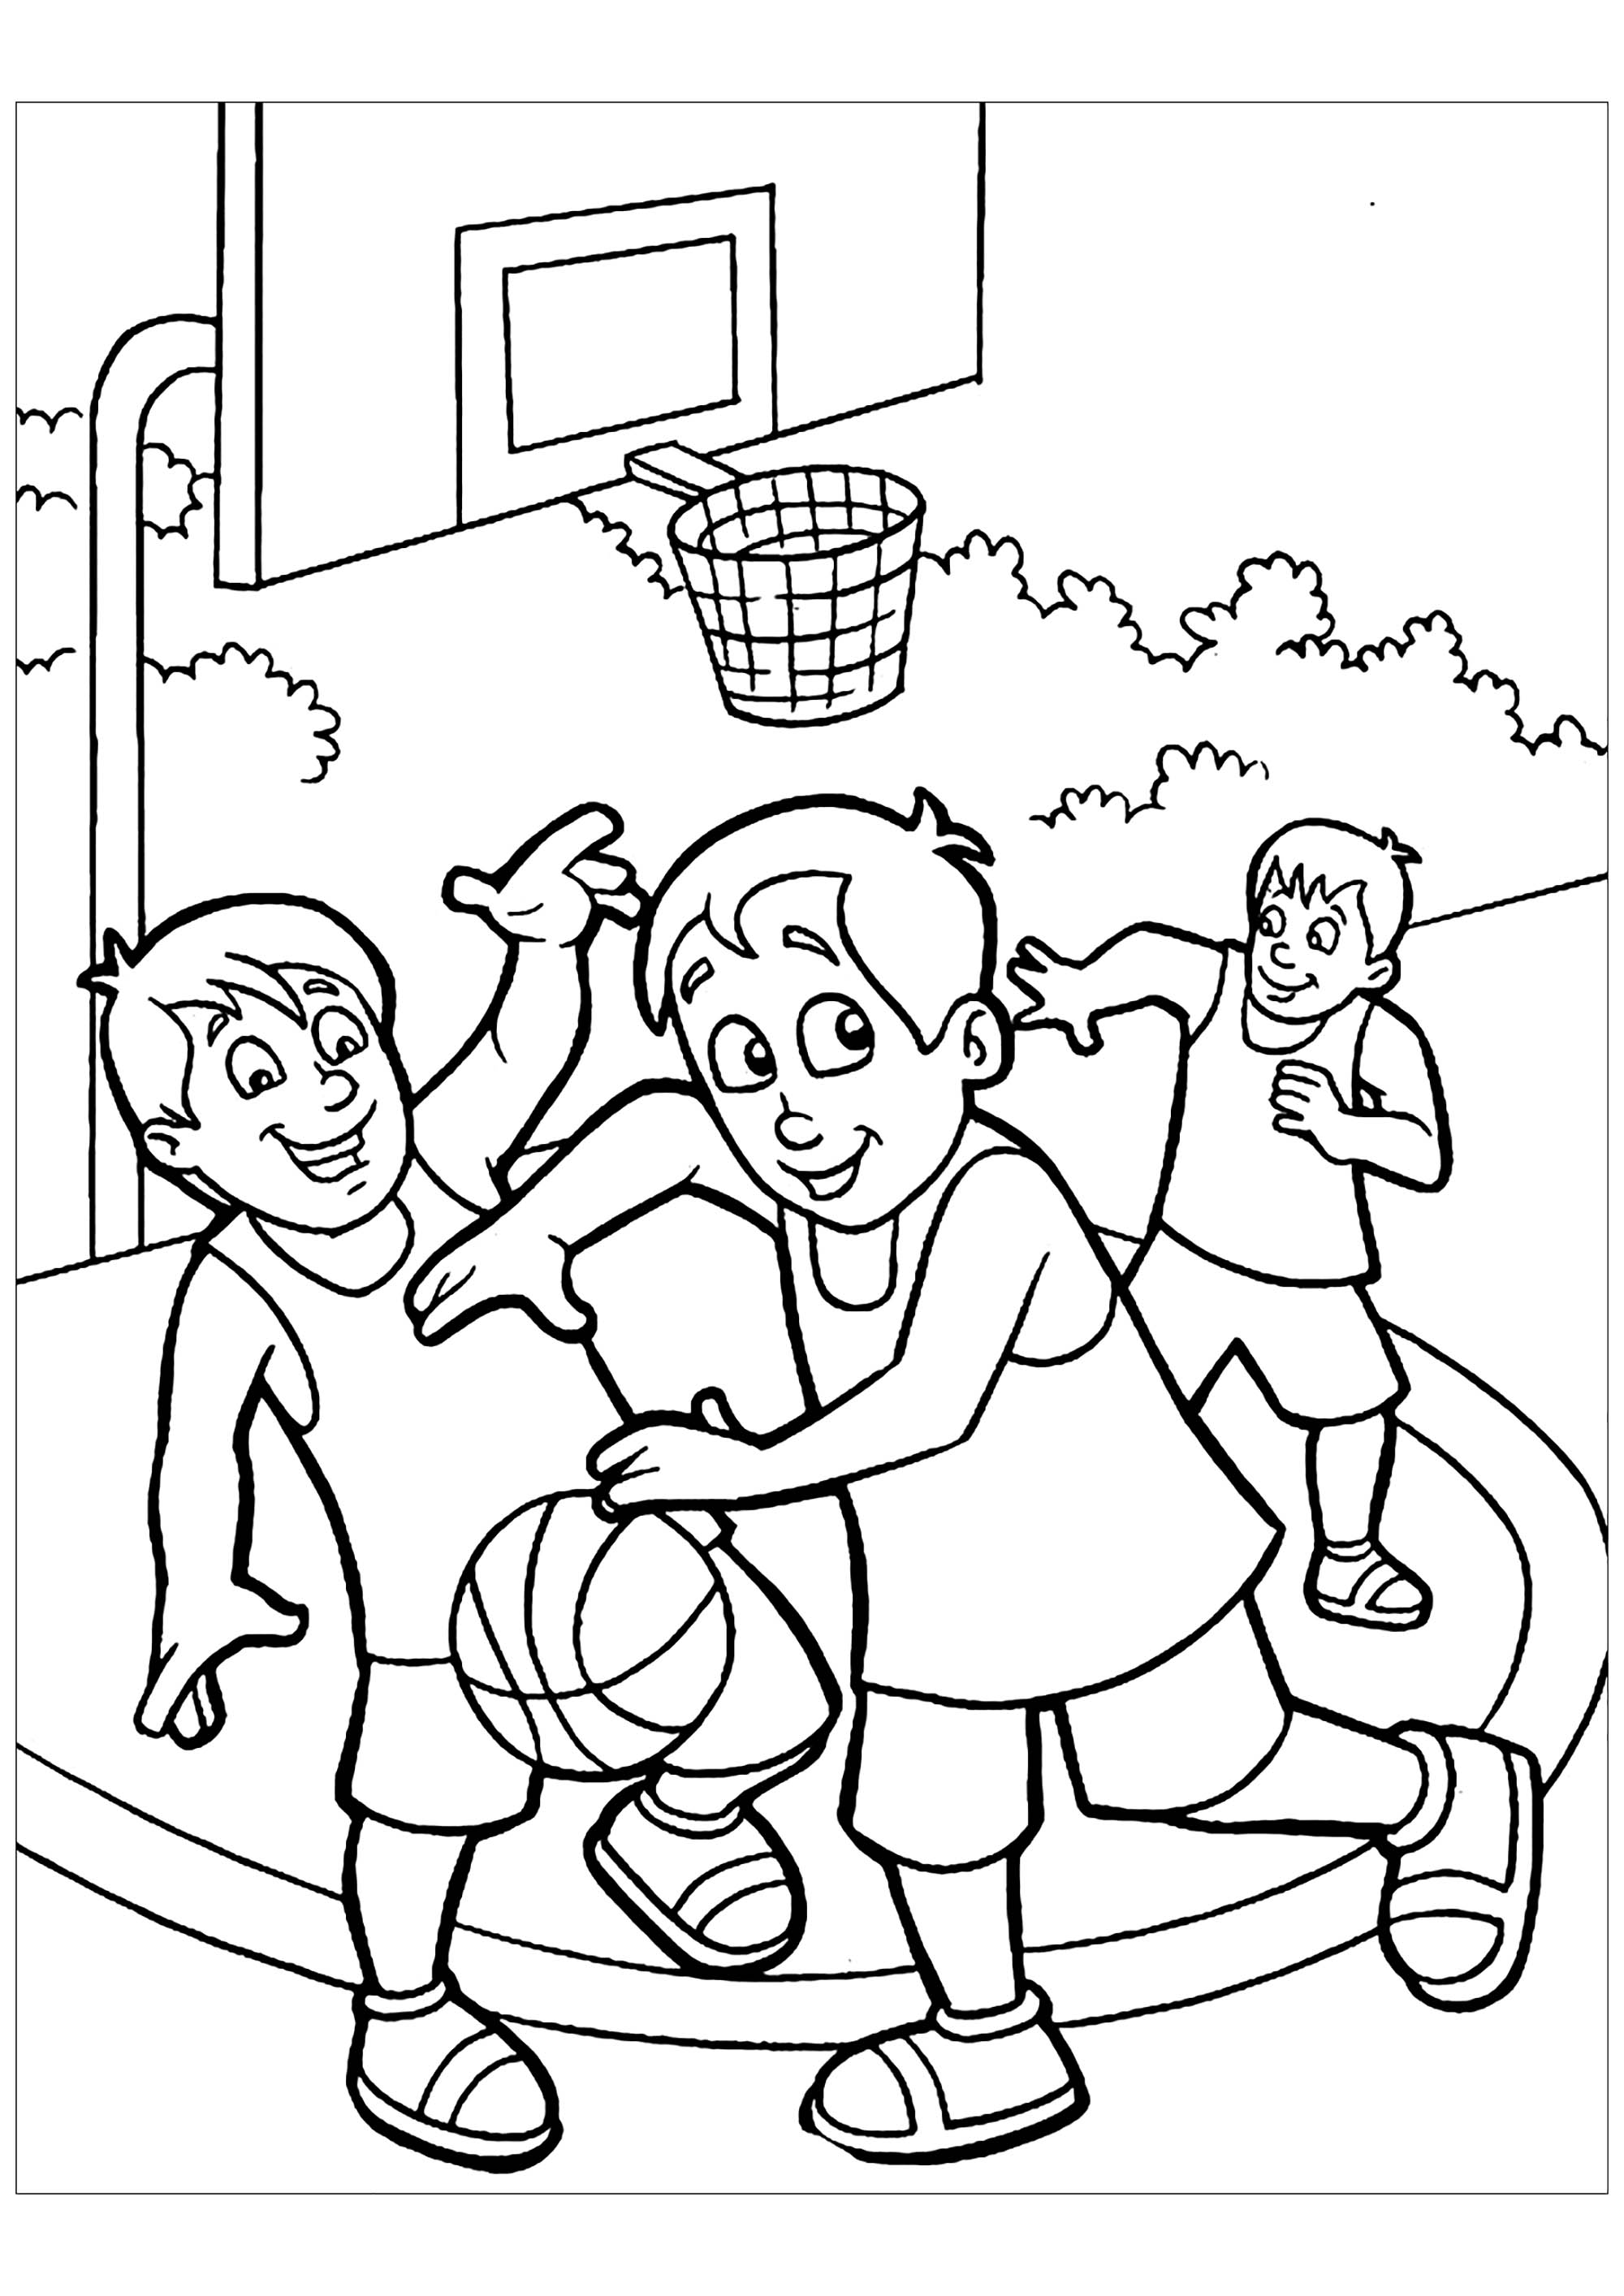 coloring pages of basketball basketball to download basketball kids coloring pages coloring of basketball pages